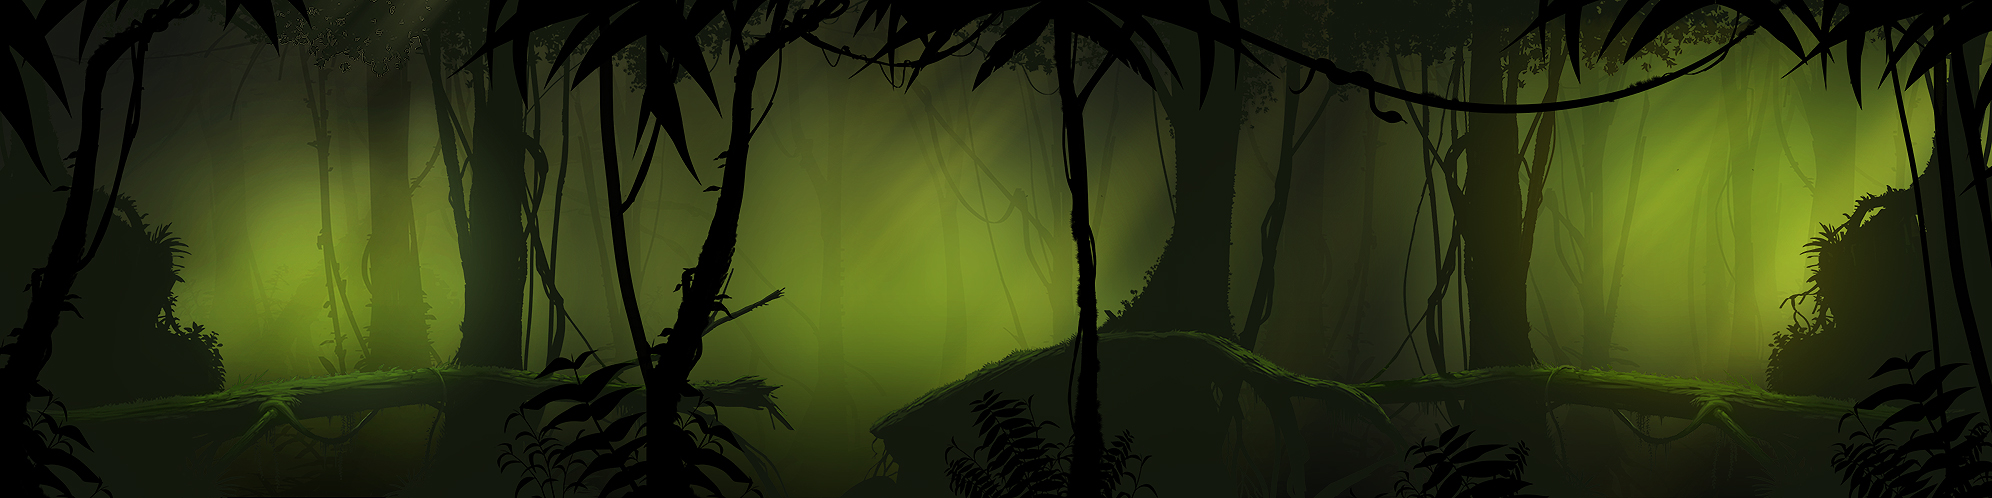 ADHD Forest Game, background concept